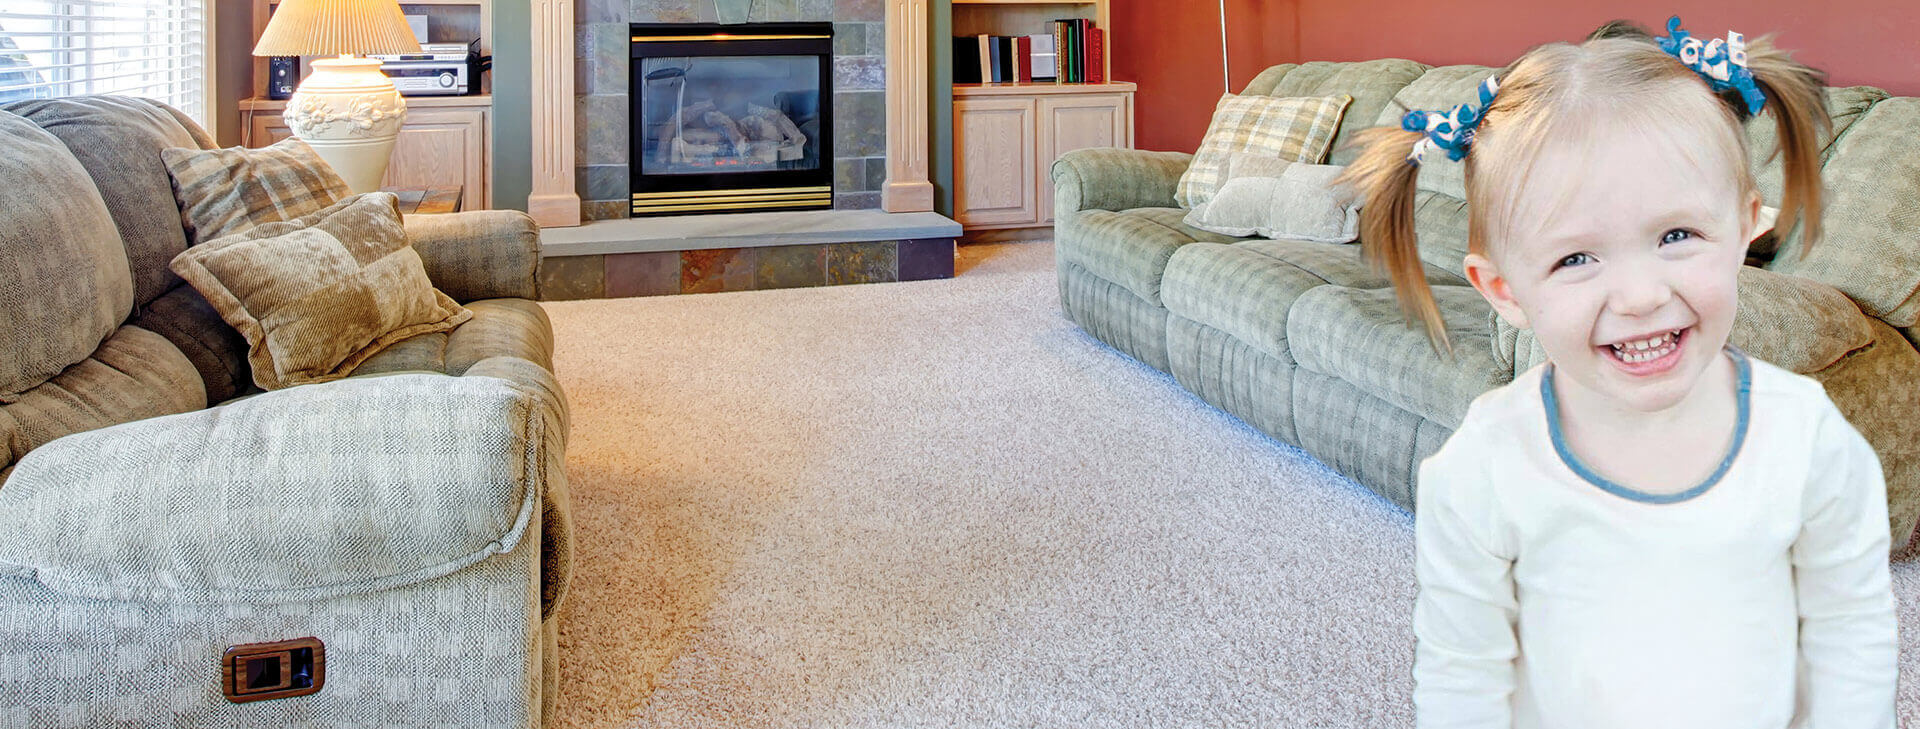 Carpet Cleaners Humble Tx Scott S Carpet Care